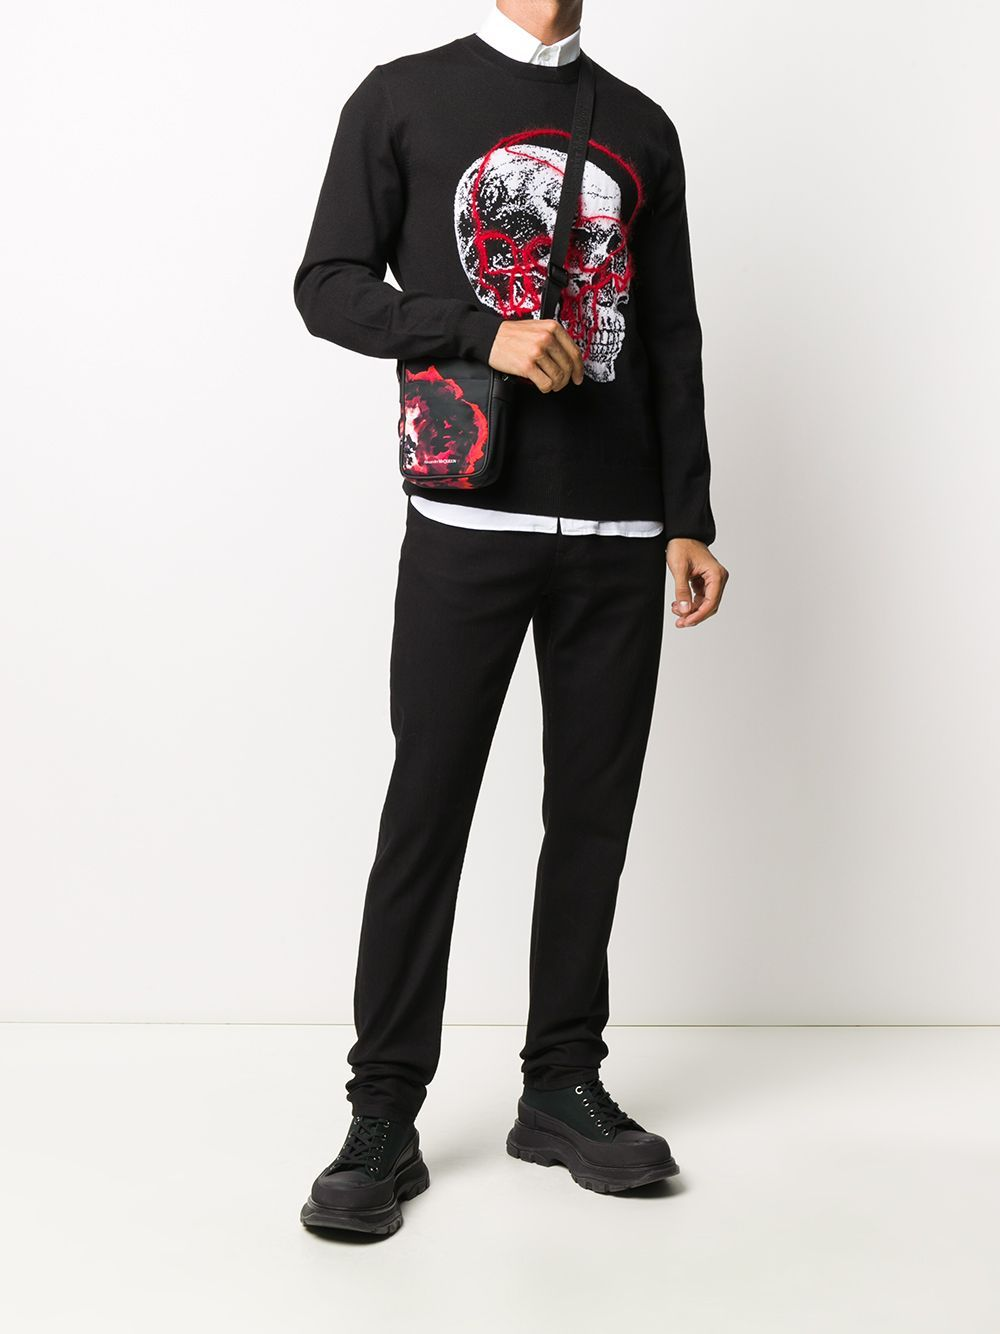 ALEXANDER MCQUEEN embroidered denim jeans black